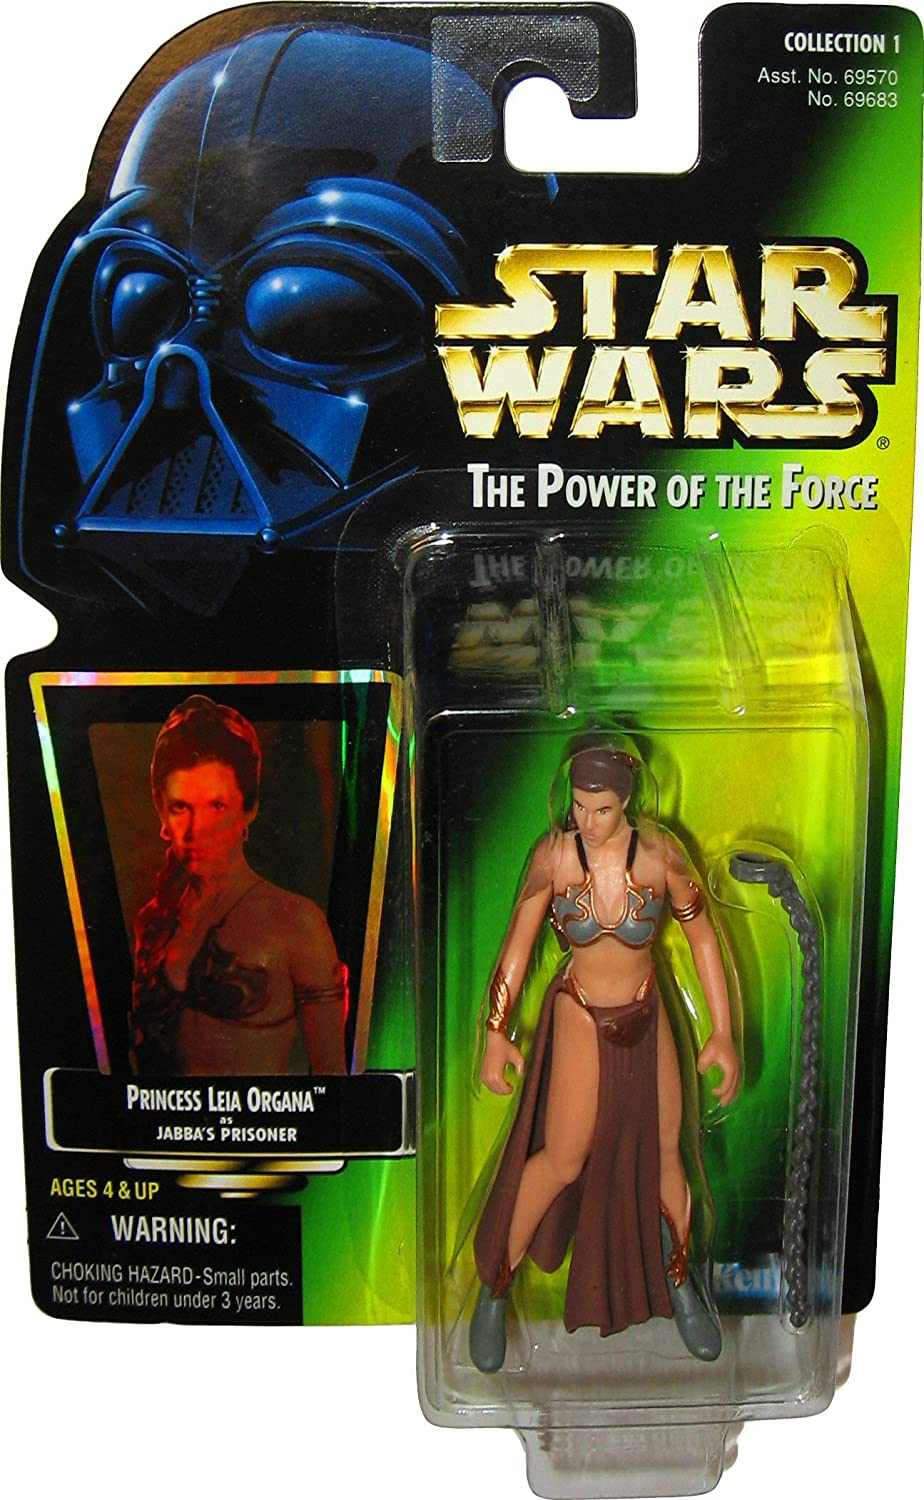 Star Wars Hasbro Princess Leia Slave Outfit The Power Of The Force Collection 1